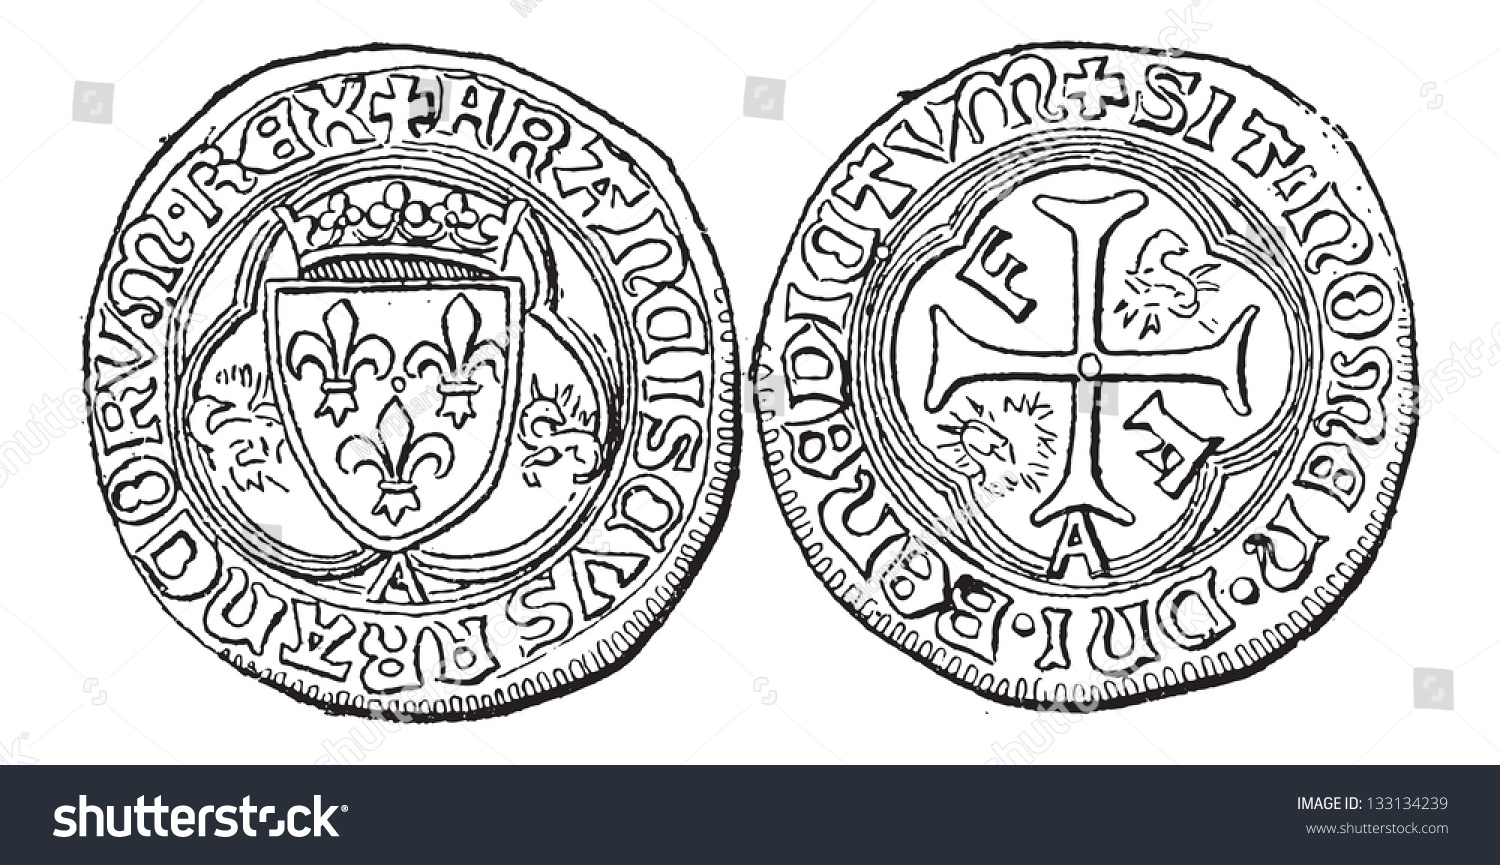 Coin currency francis france vintage engraved stock vector coin currency francis i of france vintage engraved illustration dictionary of words and biocorpaavc